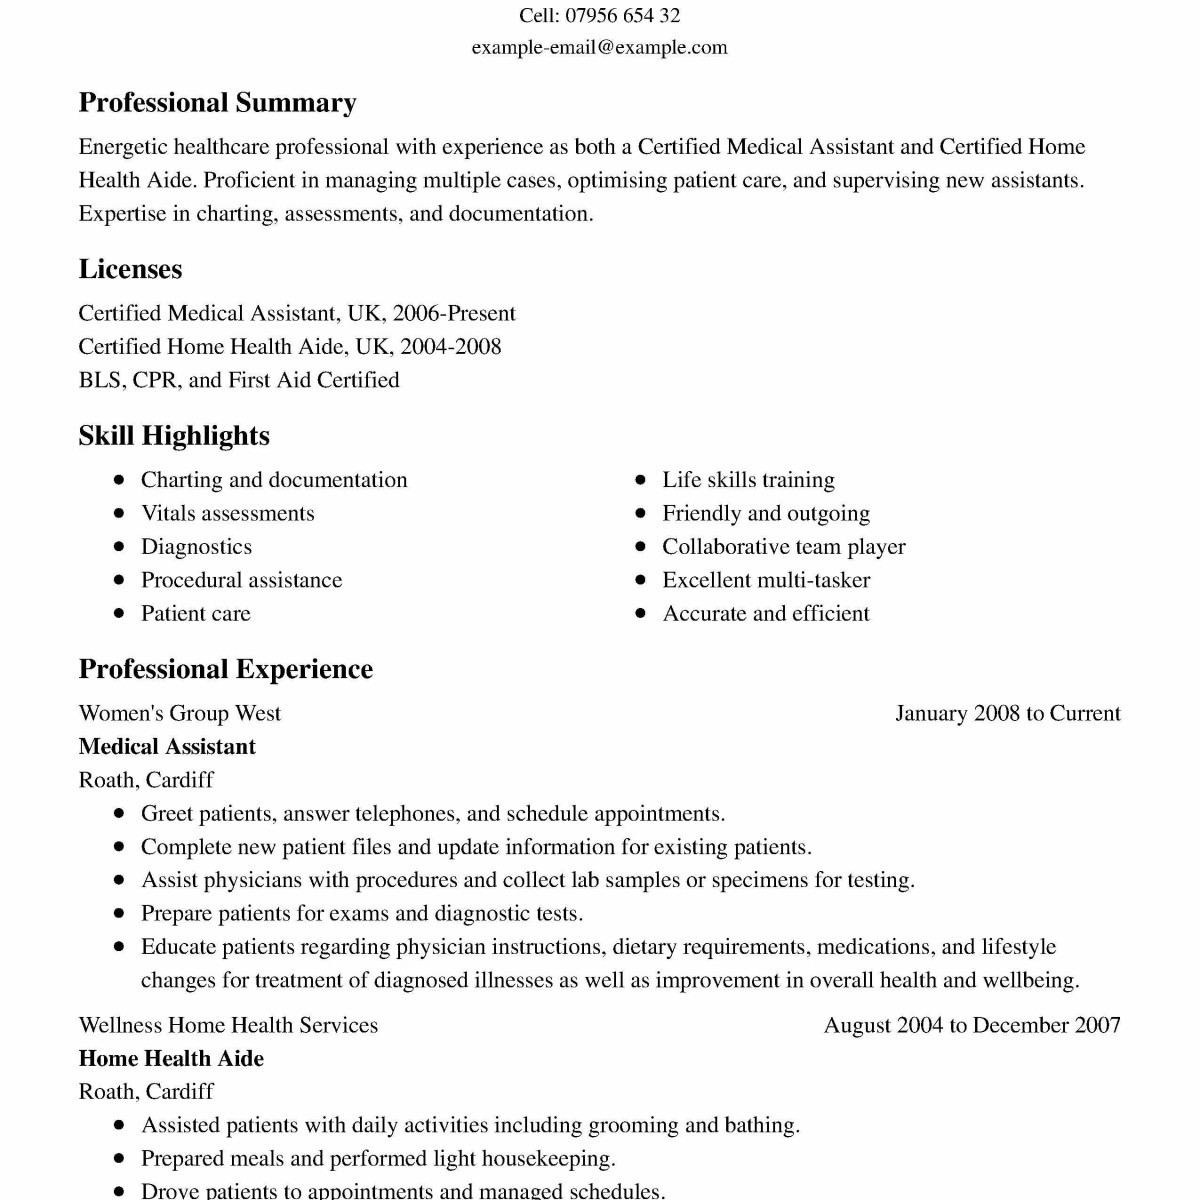 Professional Summary for Resume - Resume Professional Summary Examples Inspirational Fresh Examples